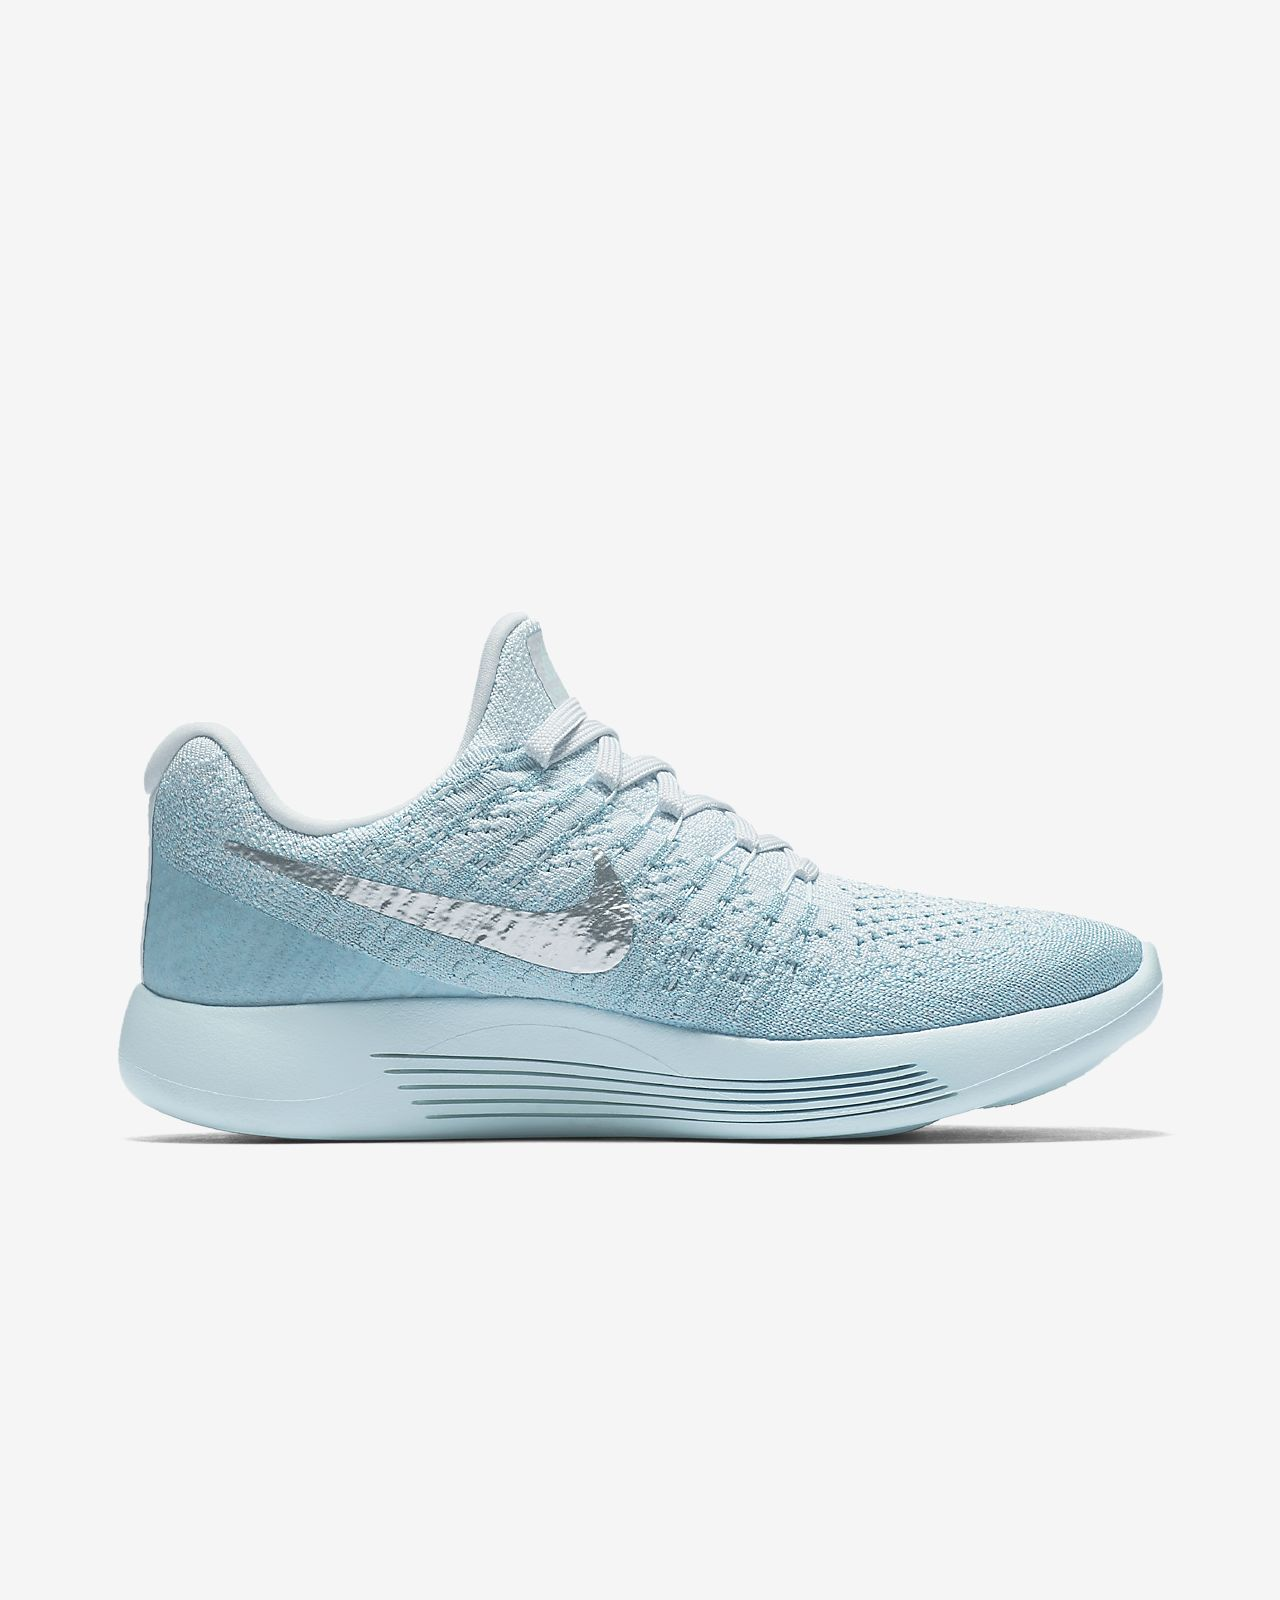 Nike LunarEpic Low Flyknit 2 Womenu0027s Running Shoe. Nike.com